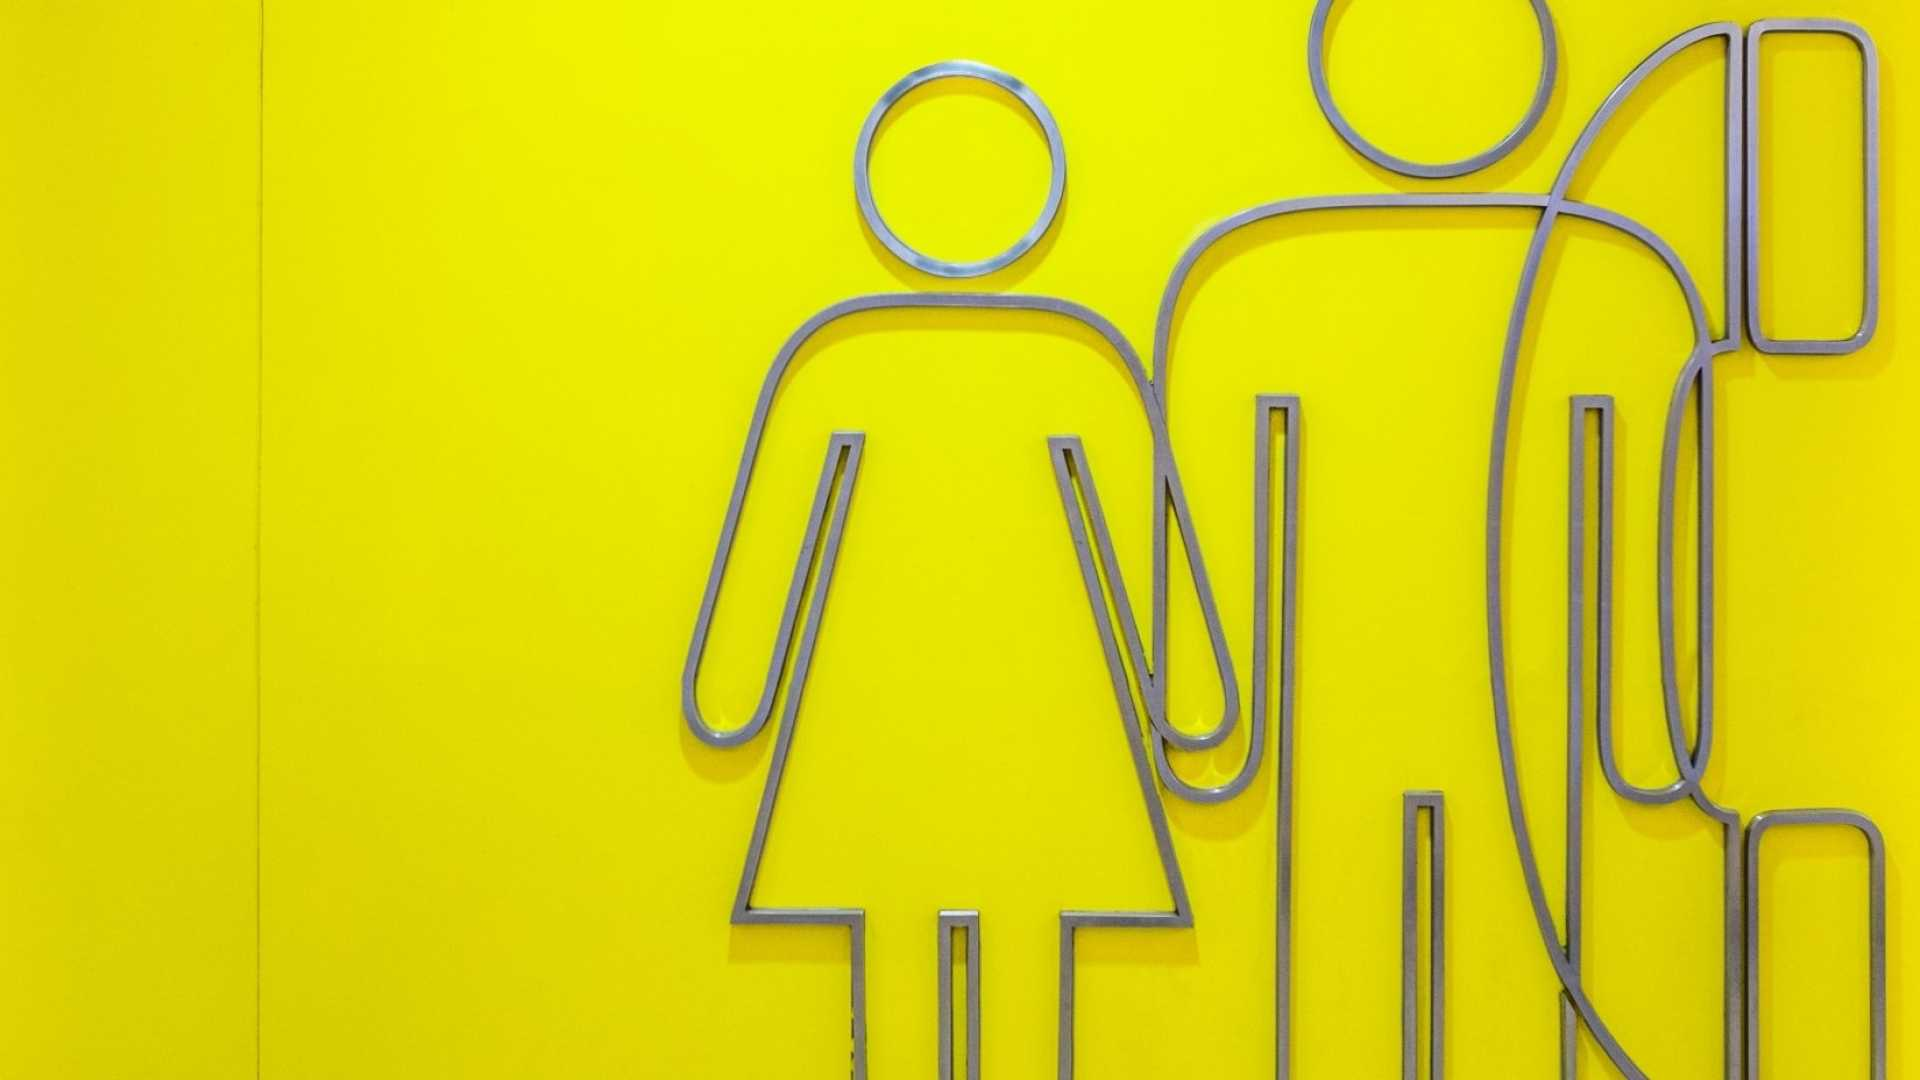 Tilting Toilets and Smell Checks Don't Solve Your Productivity Issues